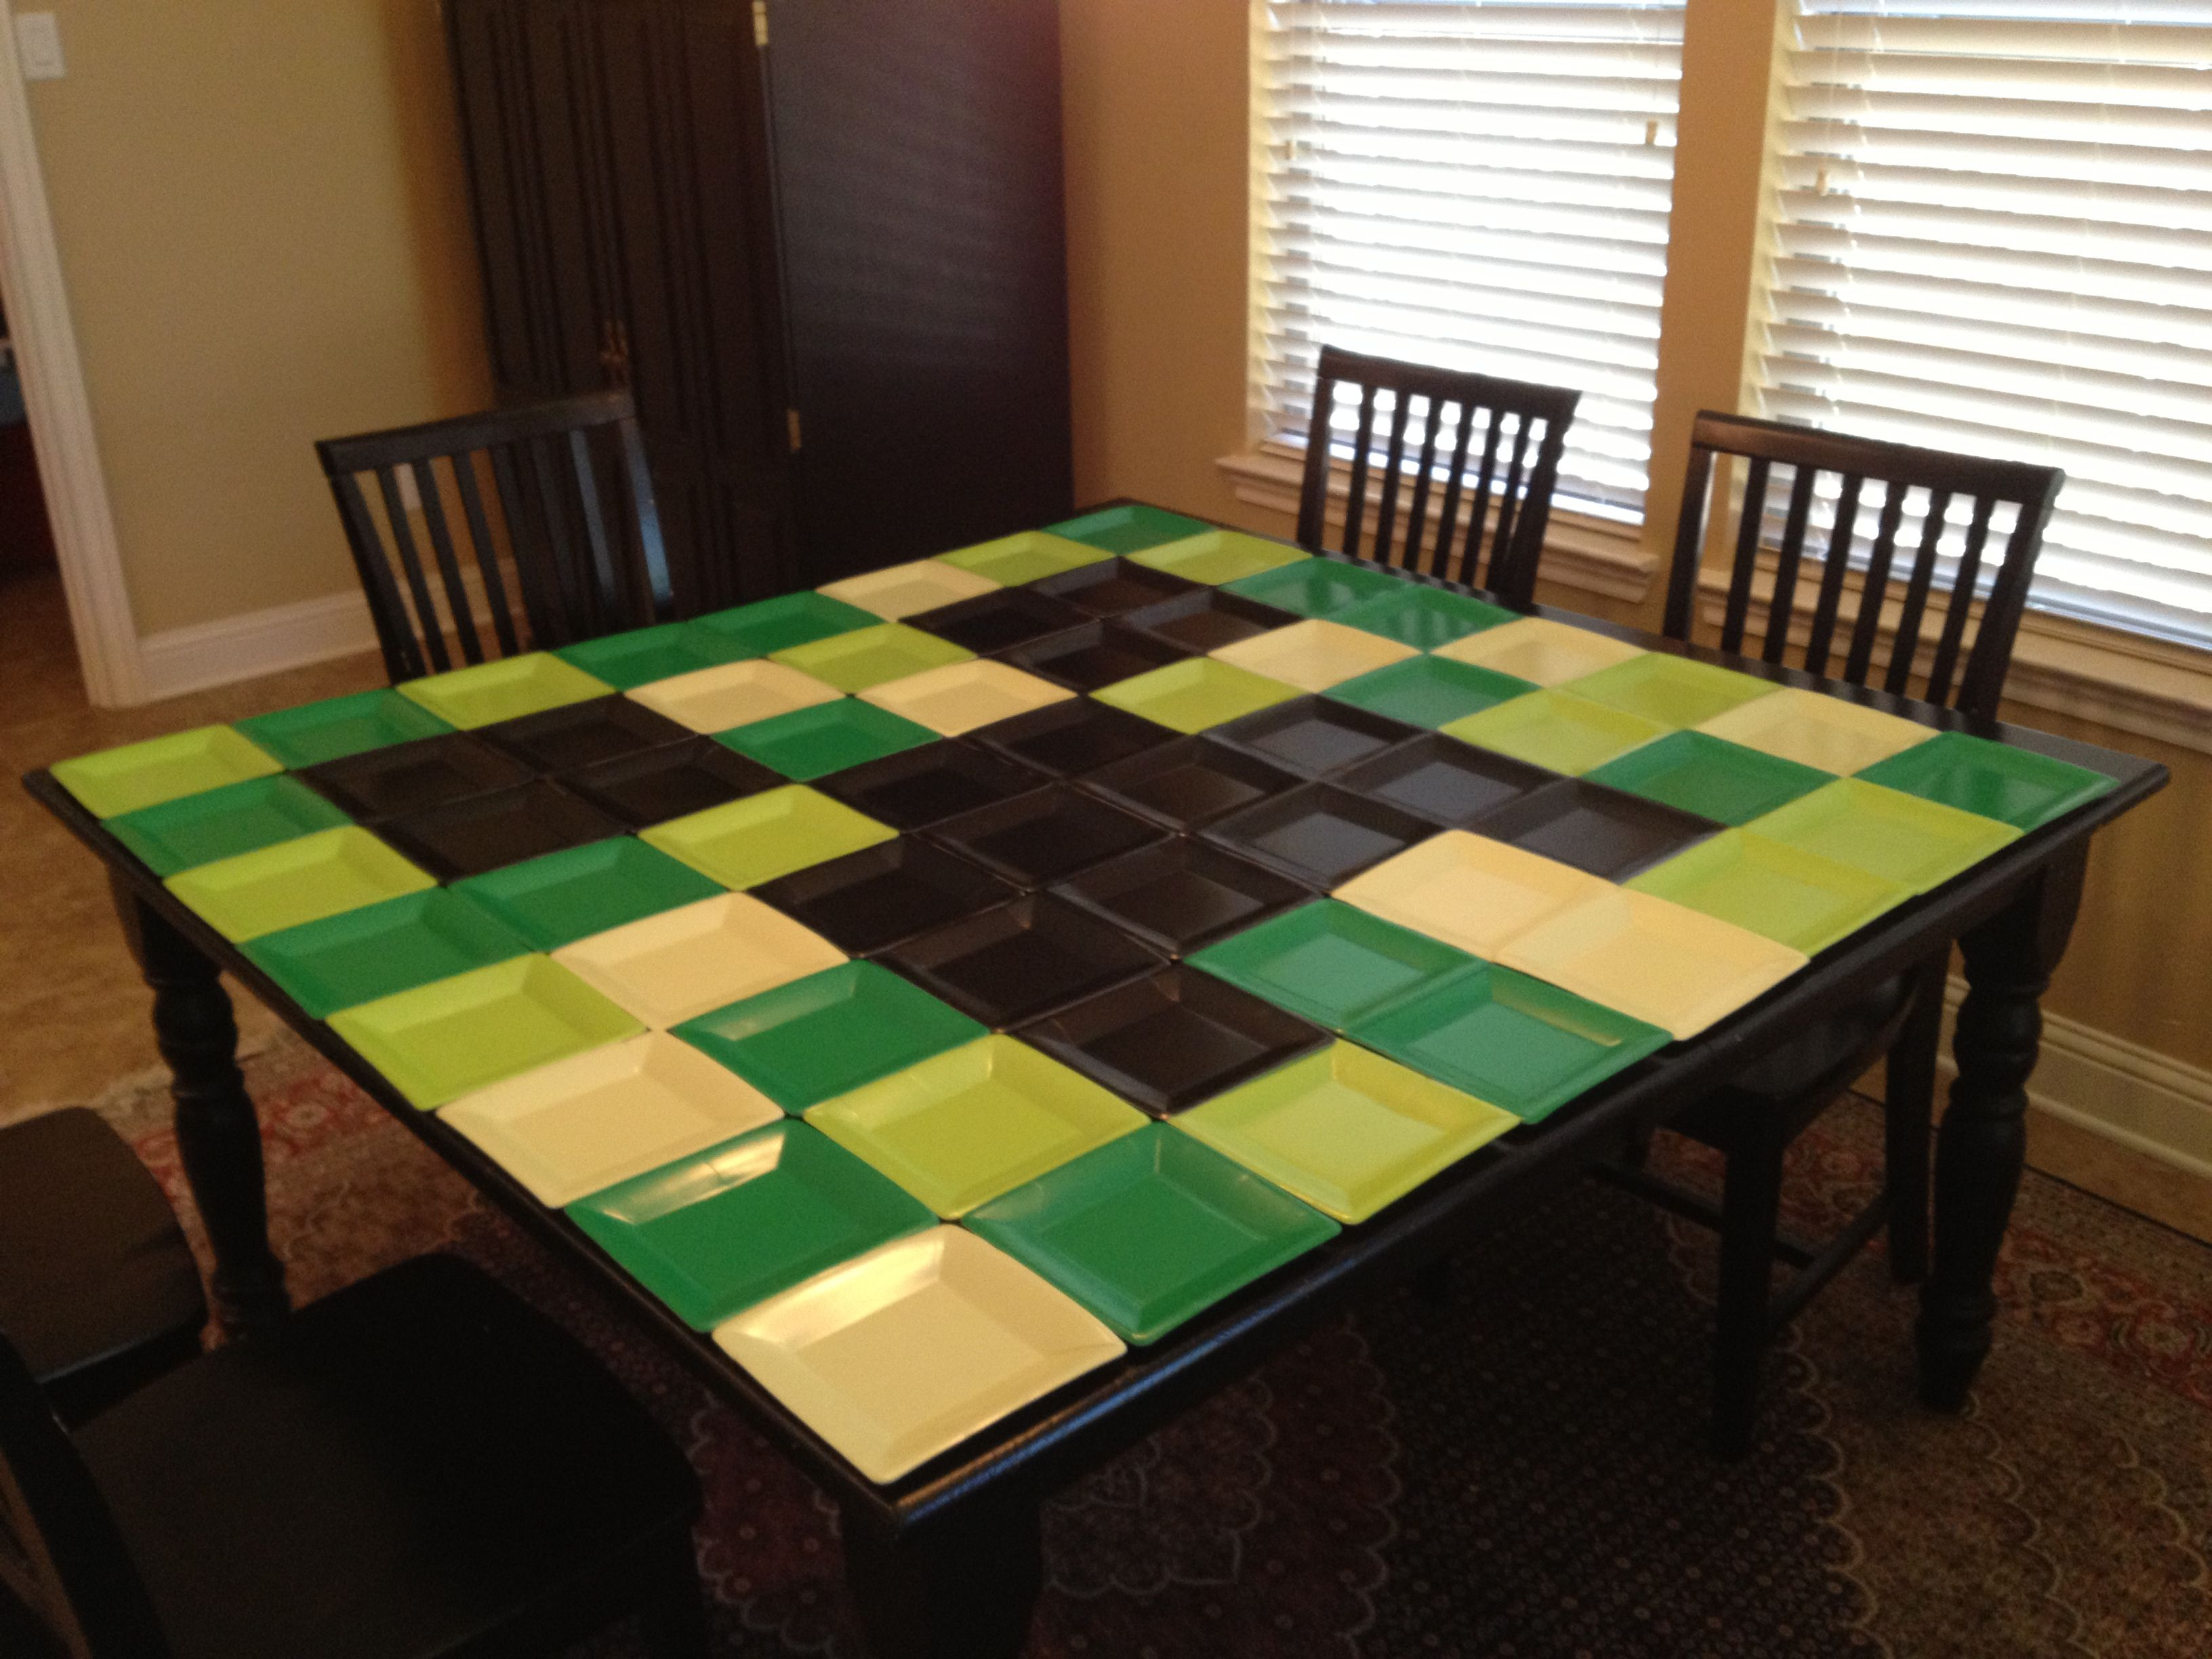 Minecraft Kitchen Table Minecraft creeper so could do this on kitchen tableybe minecraft creeper so could do this on kitchen tableybe putting a dark grayish tablecloth and use the square paper plates turned upside down and cover workwithnaturefo